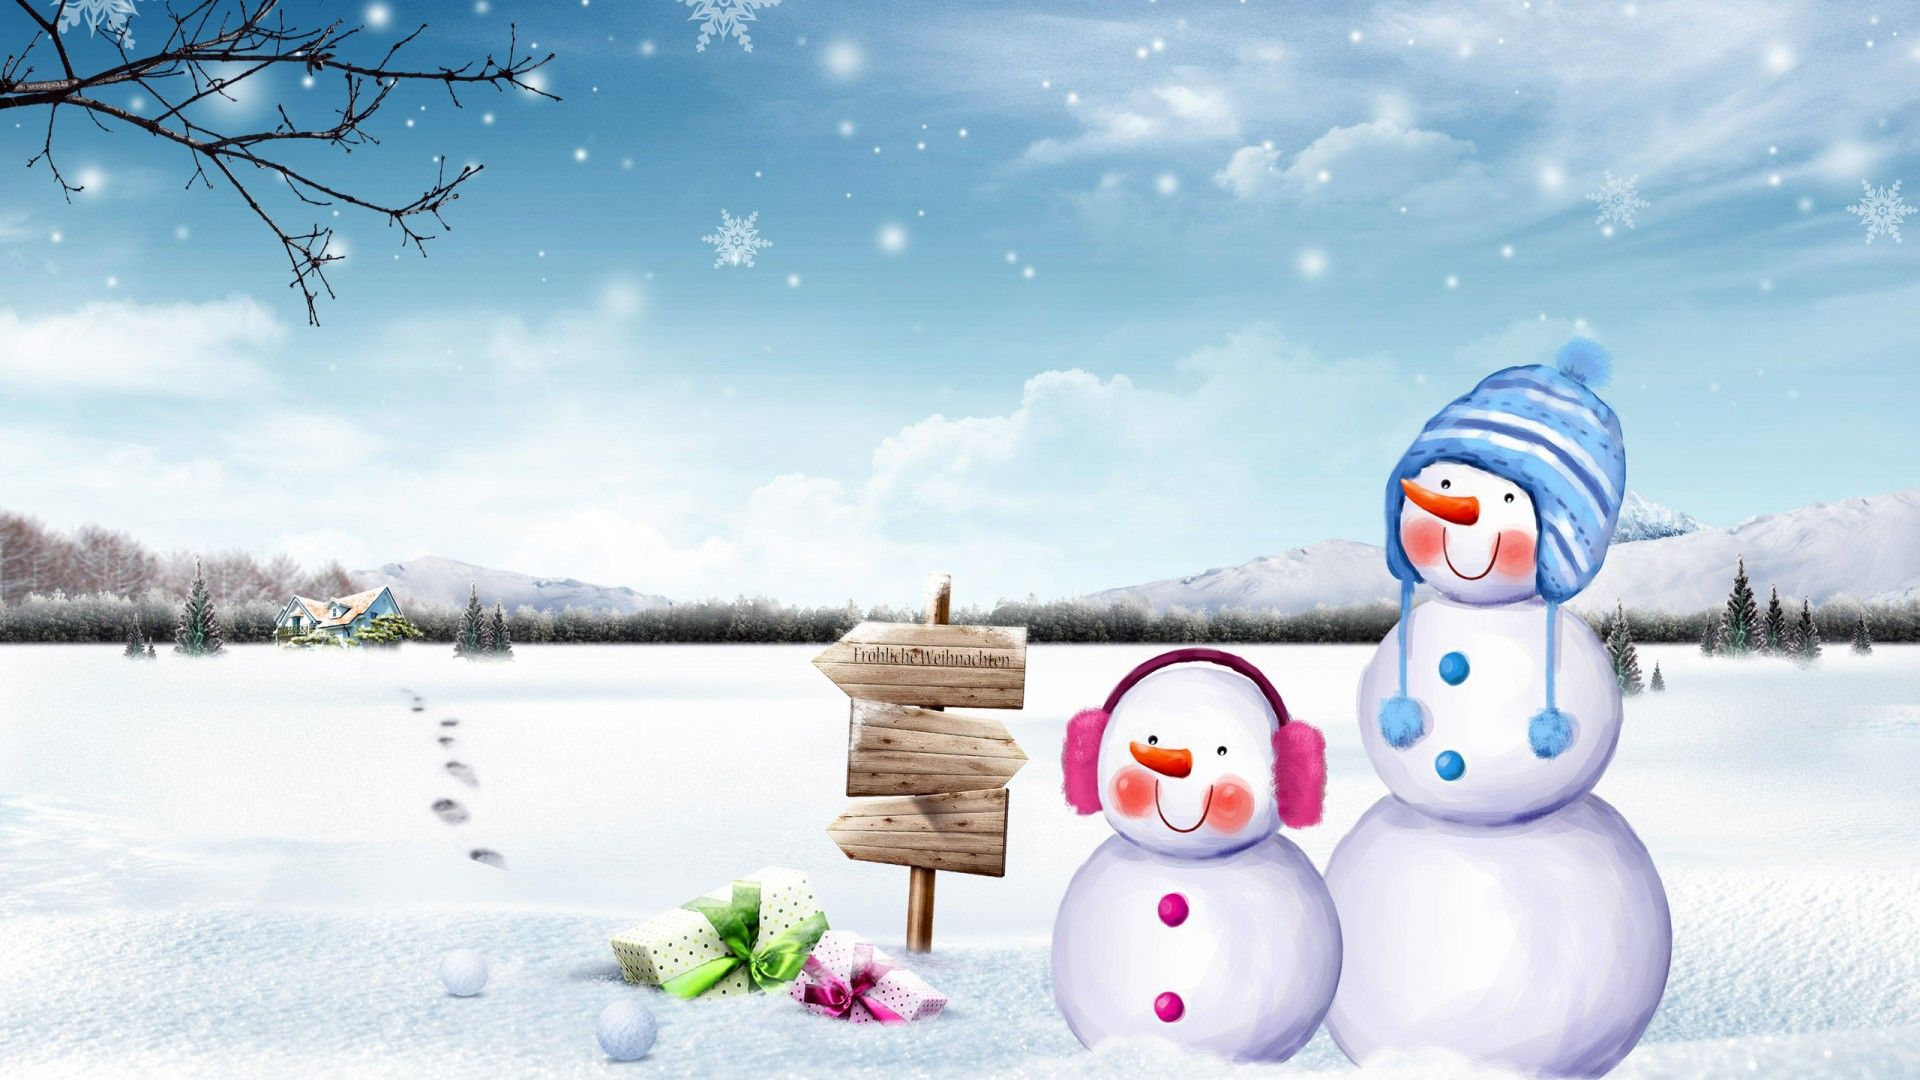 cute winter wallpapers 36 images wallpaperboat cute winter wallpapers 36 images